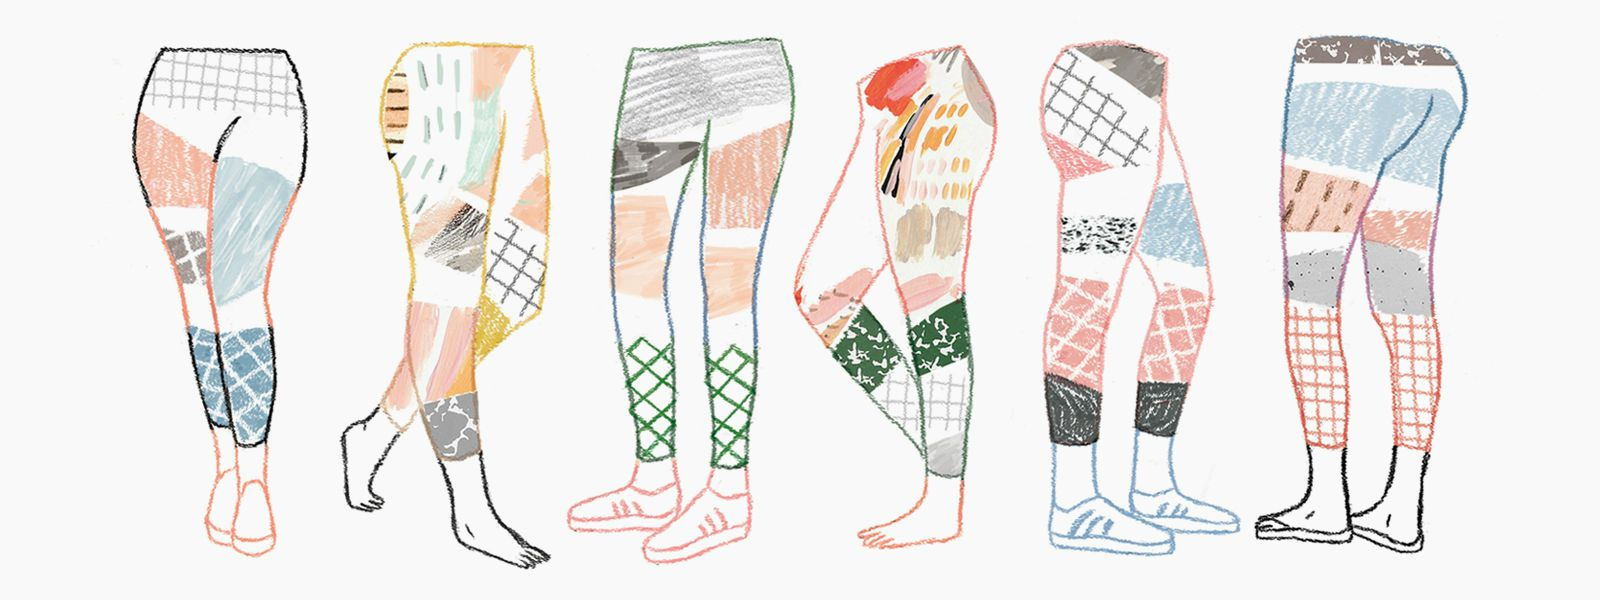 Lularoe Leggings - A Look Inside Modern Day MLM Companies (Illustration by Kobie Nieuwoudt)